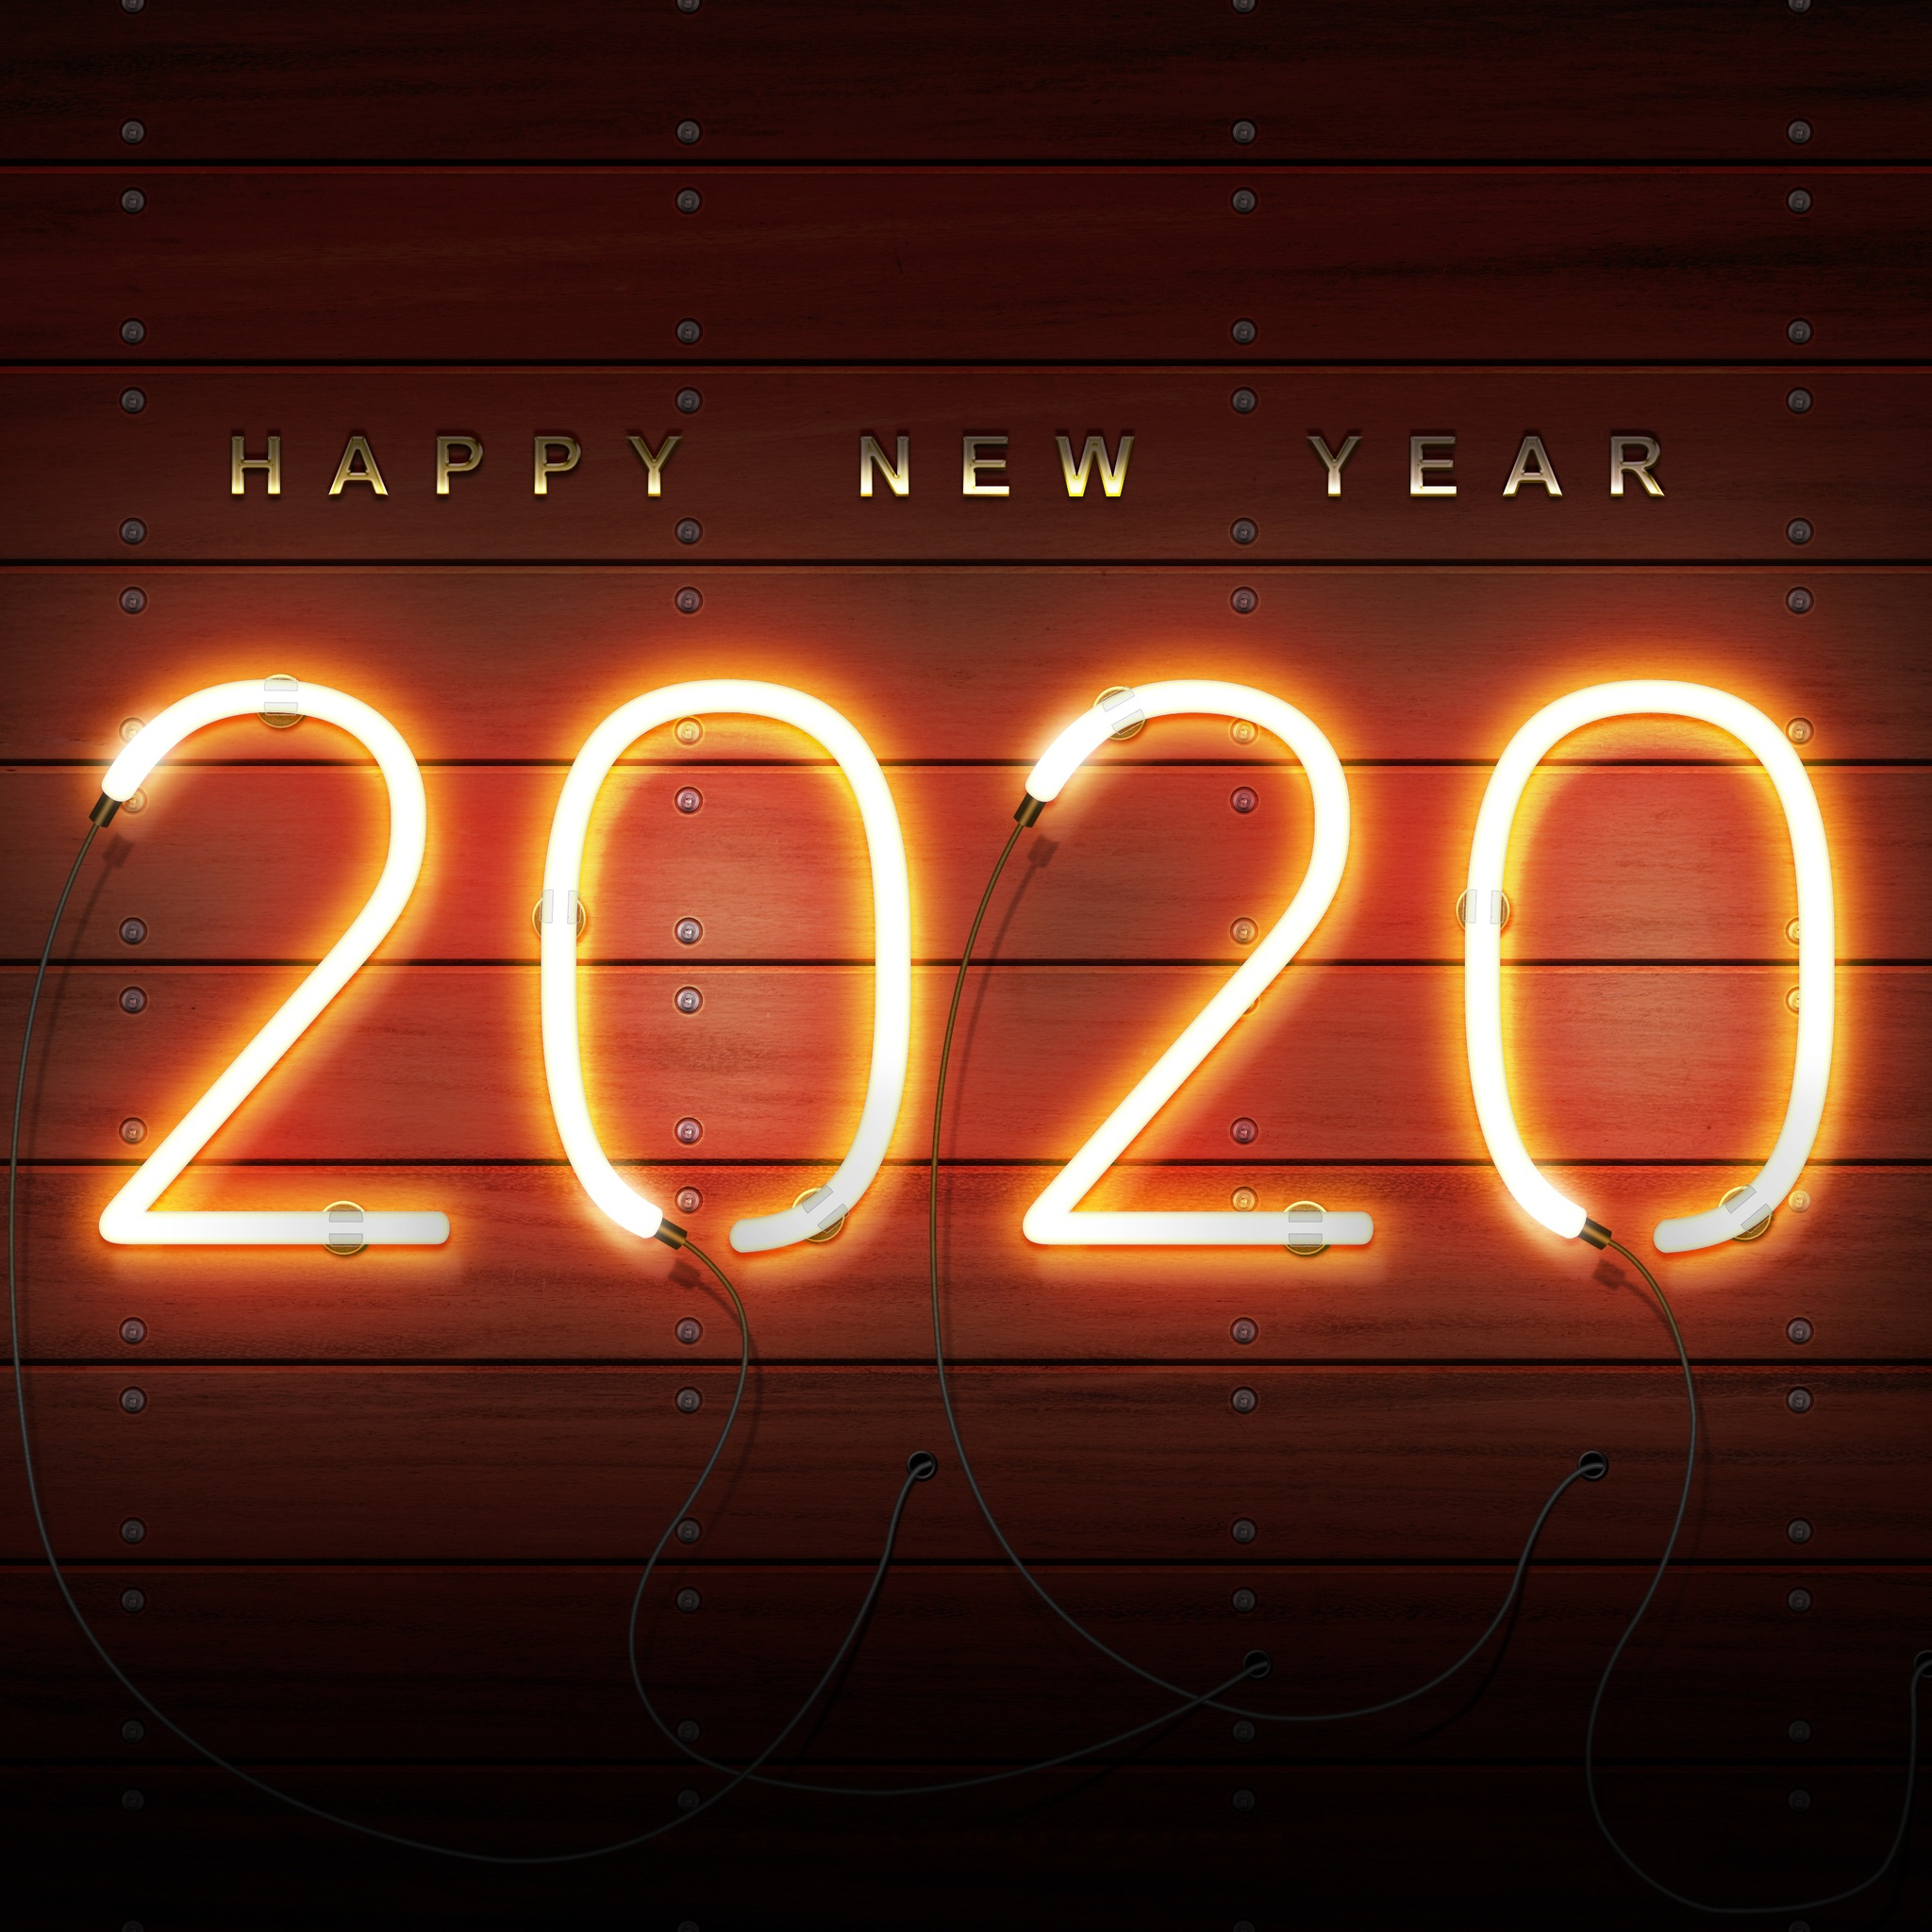 happy-new-year-2020-xf.jpg